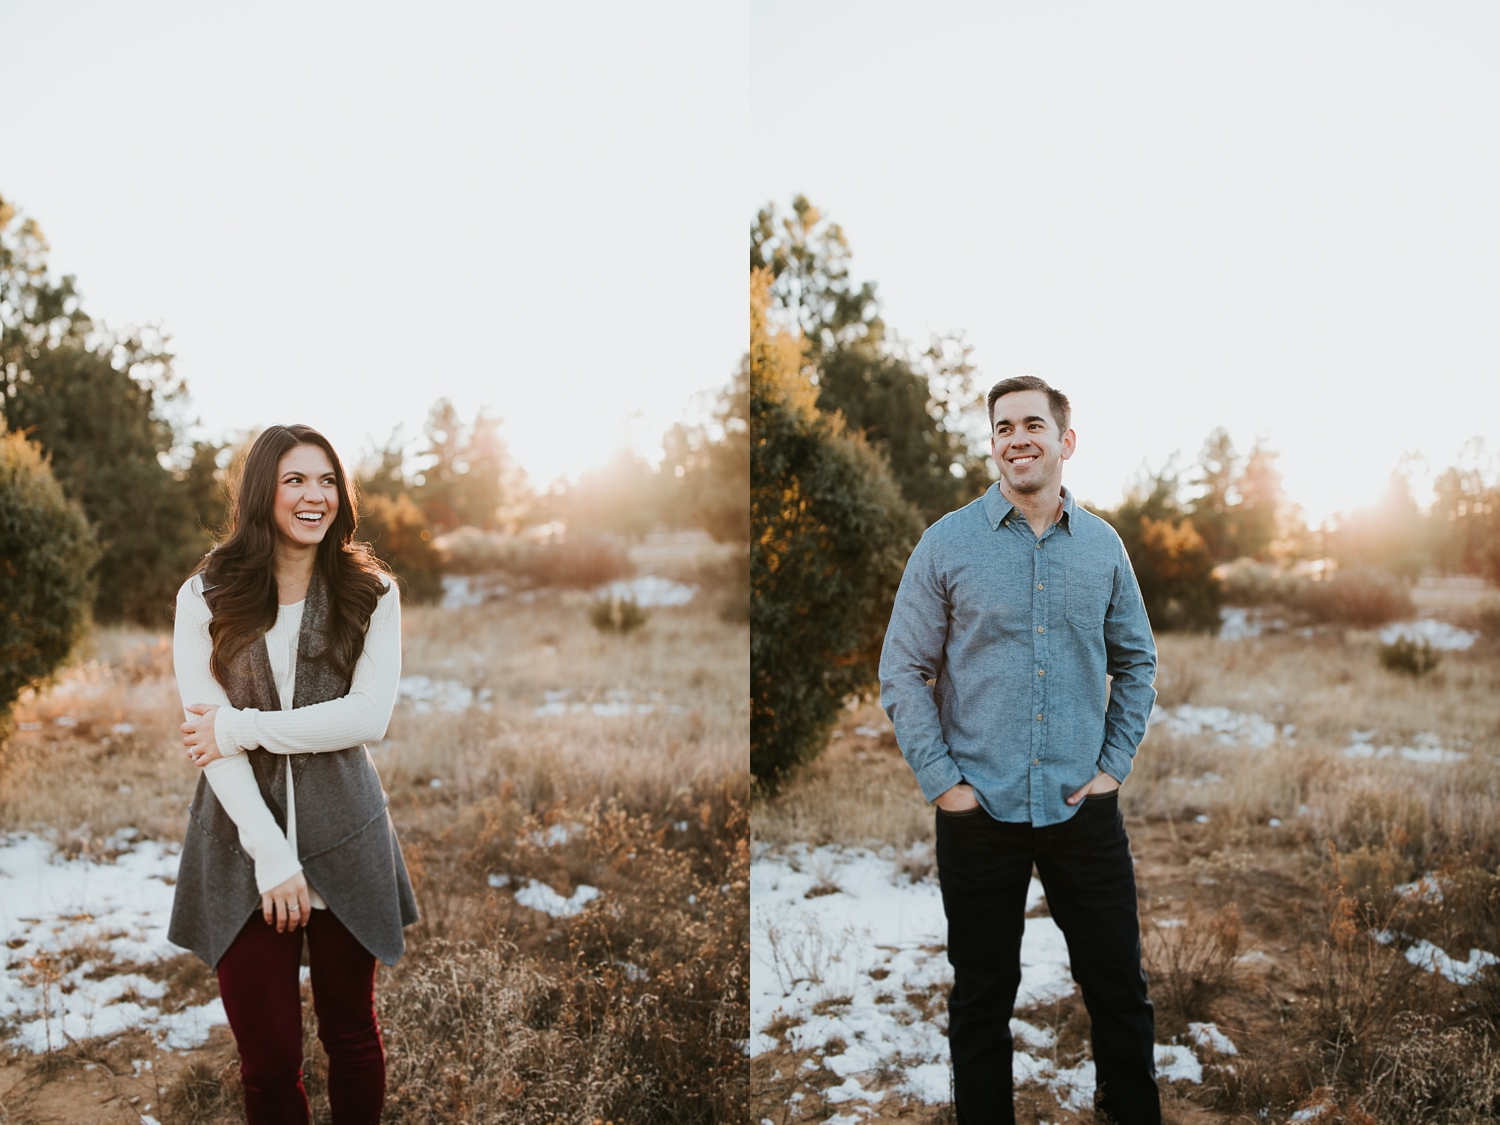 Alicia+lucia+photography+-+albuquerque+wedding+photographer+-+santa+fe+wedding+photography+-+new+mexico+wedding+photographer+-+new+mexico+engagement+-+winter+engagement+session_0018.jpg